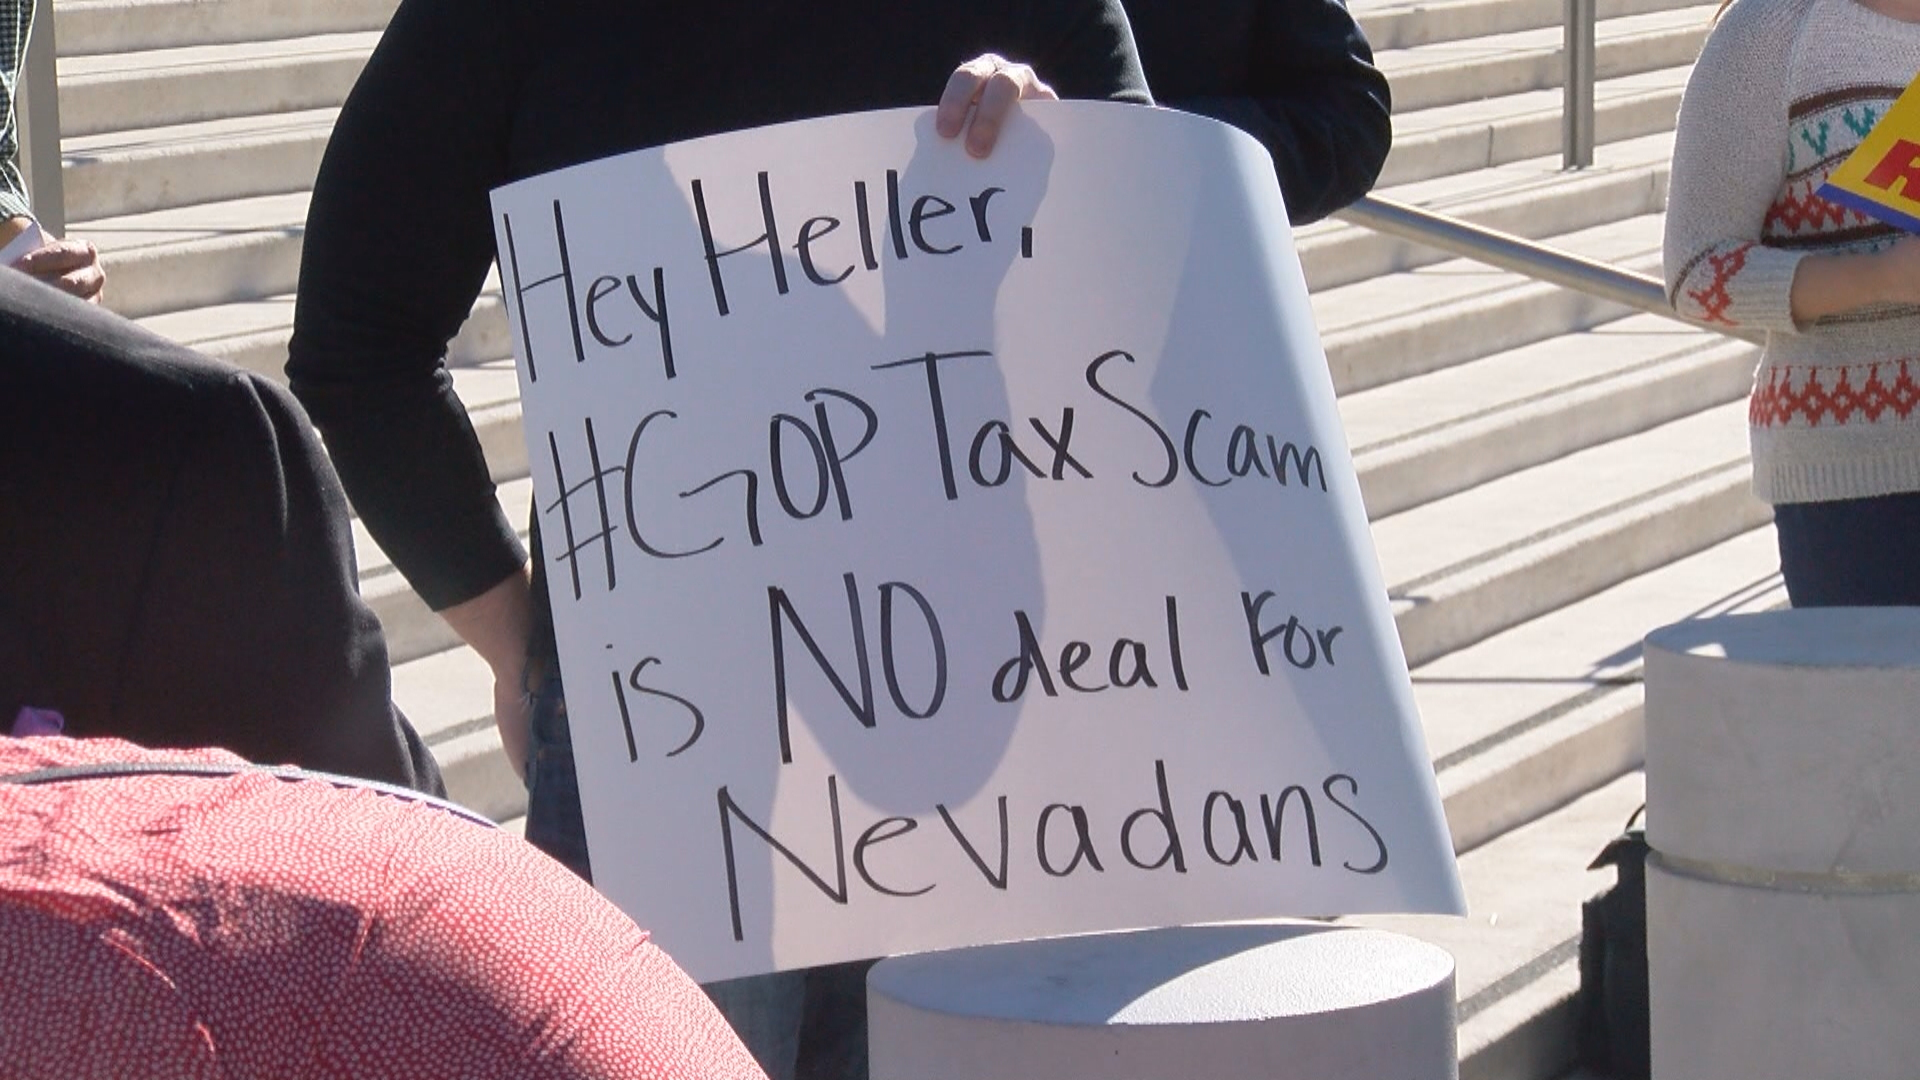 Protesters against the Republican effort to rewrite the tax code gather Wednesday, November 29, 2017, outside the federal courthouse in downtown Las Vegas. (Scott Kost/KSNV)